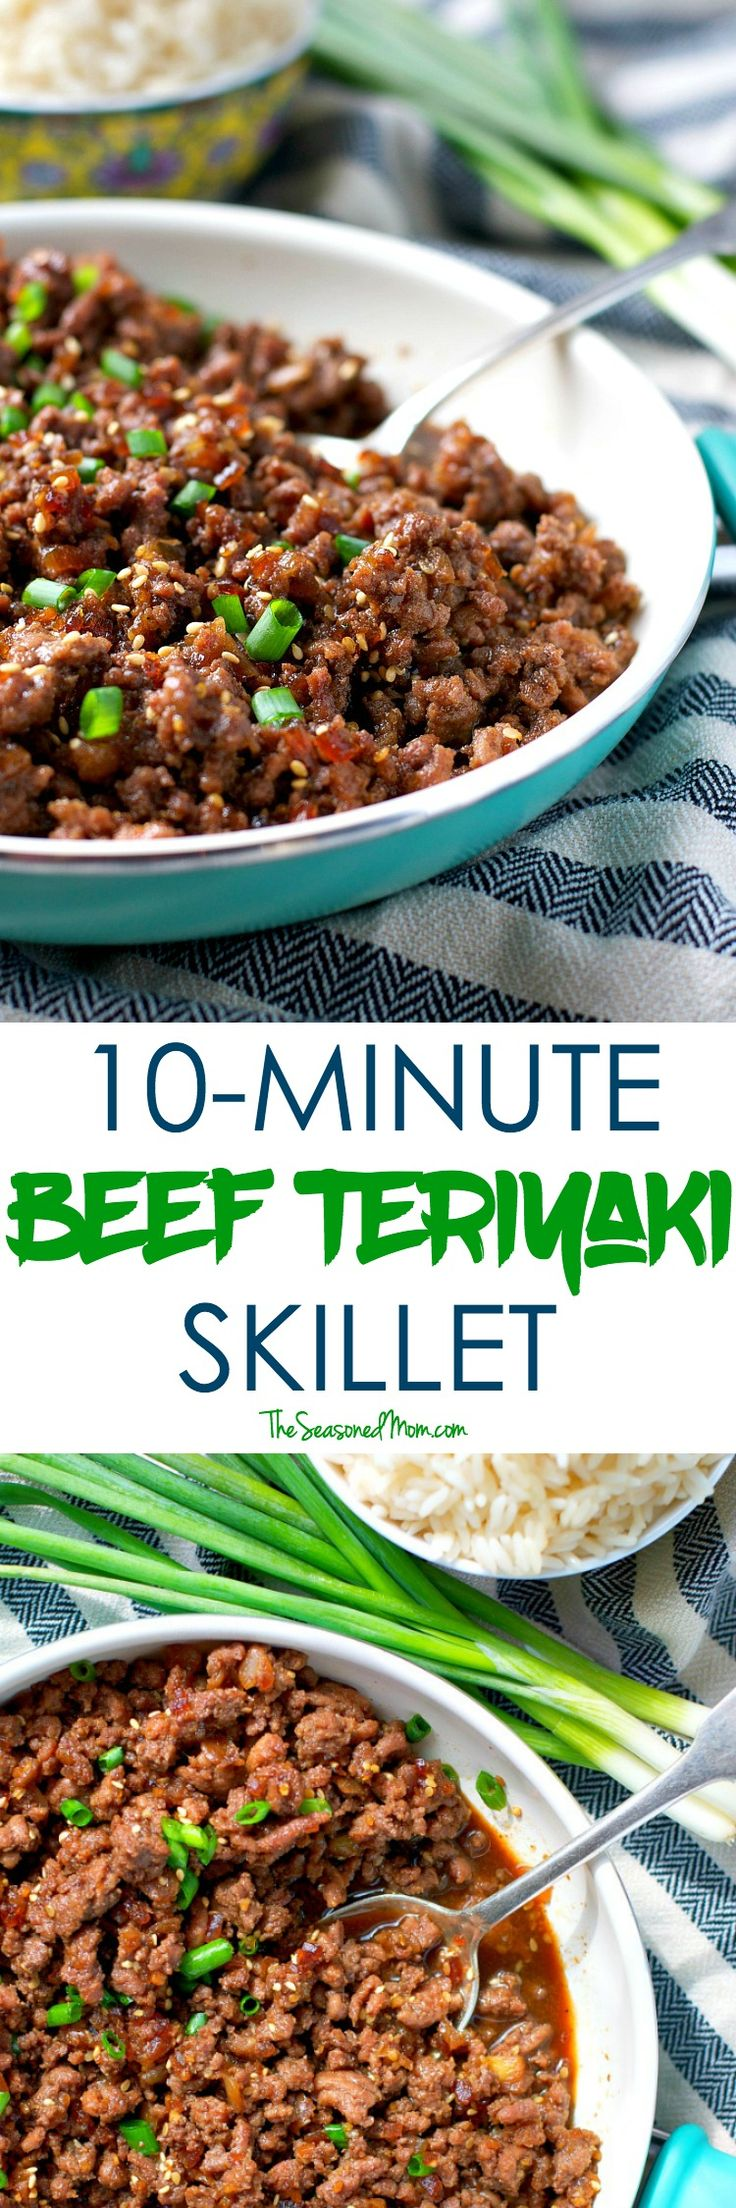 You only need 5 ingredients and about 10 minutes to pull together an easy BEEF TERIYAKI SKILLET dinner that's perfect for busy weeknights!